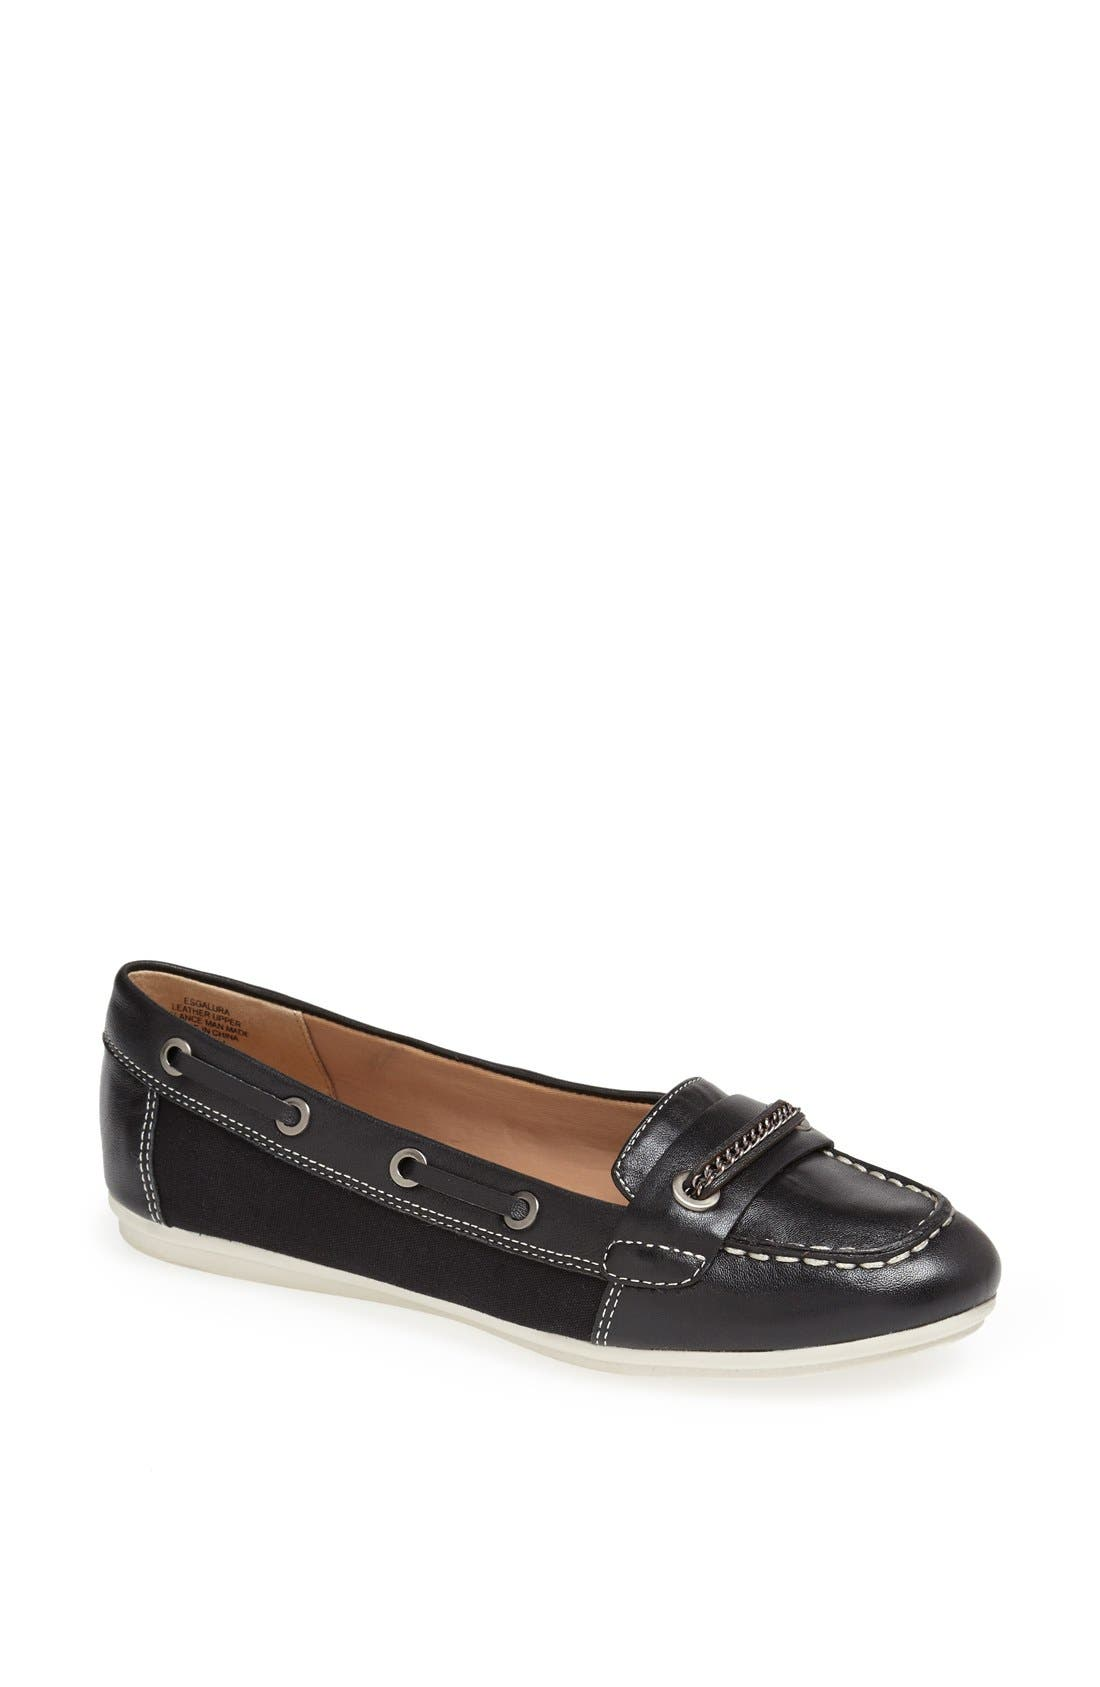 Main Image - Easy Spirit 'e360 - Galura' Loafer (Women)